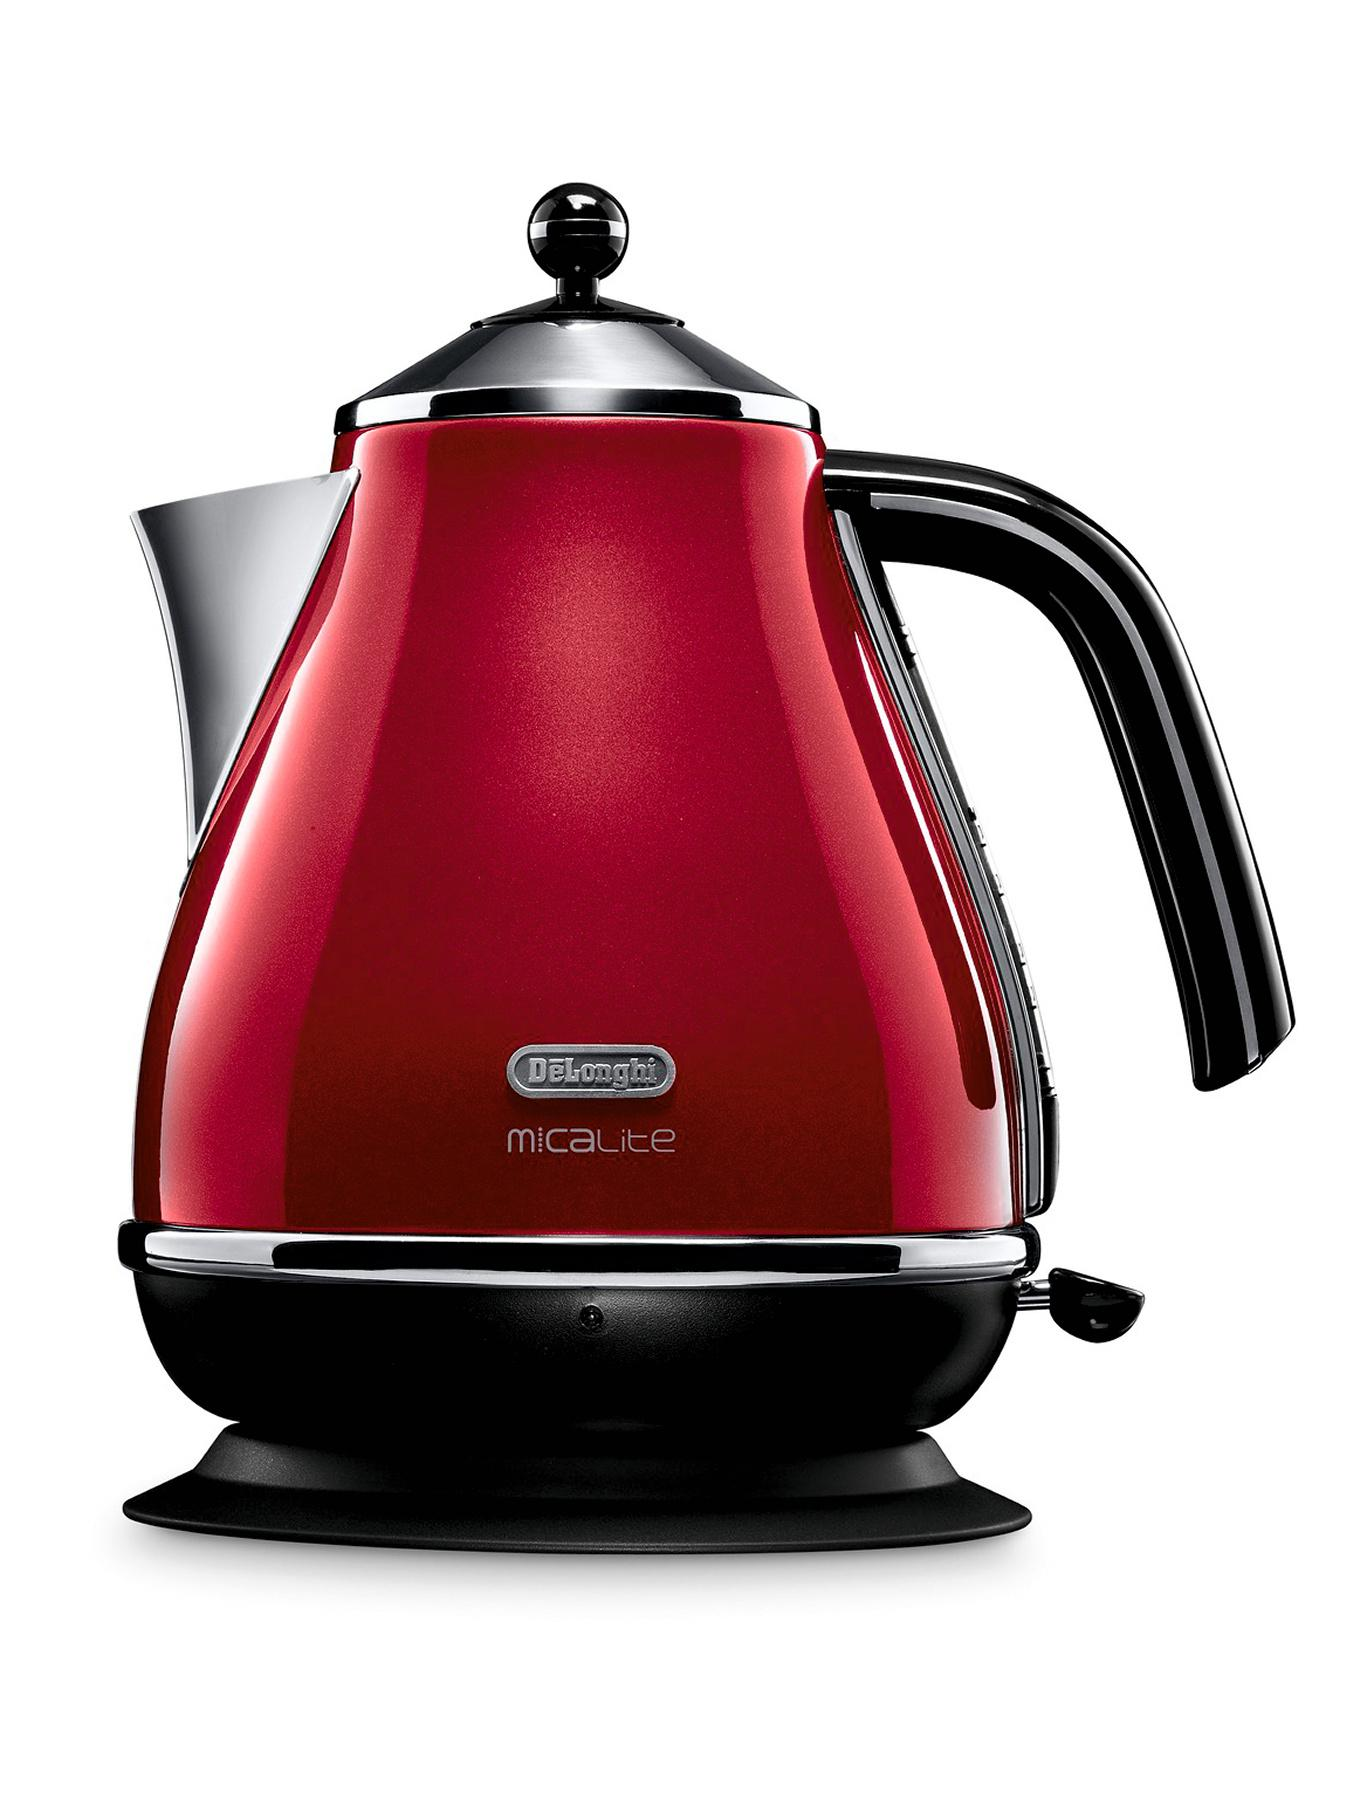 KBOM3001 Micalite Icona Kettle - Red